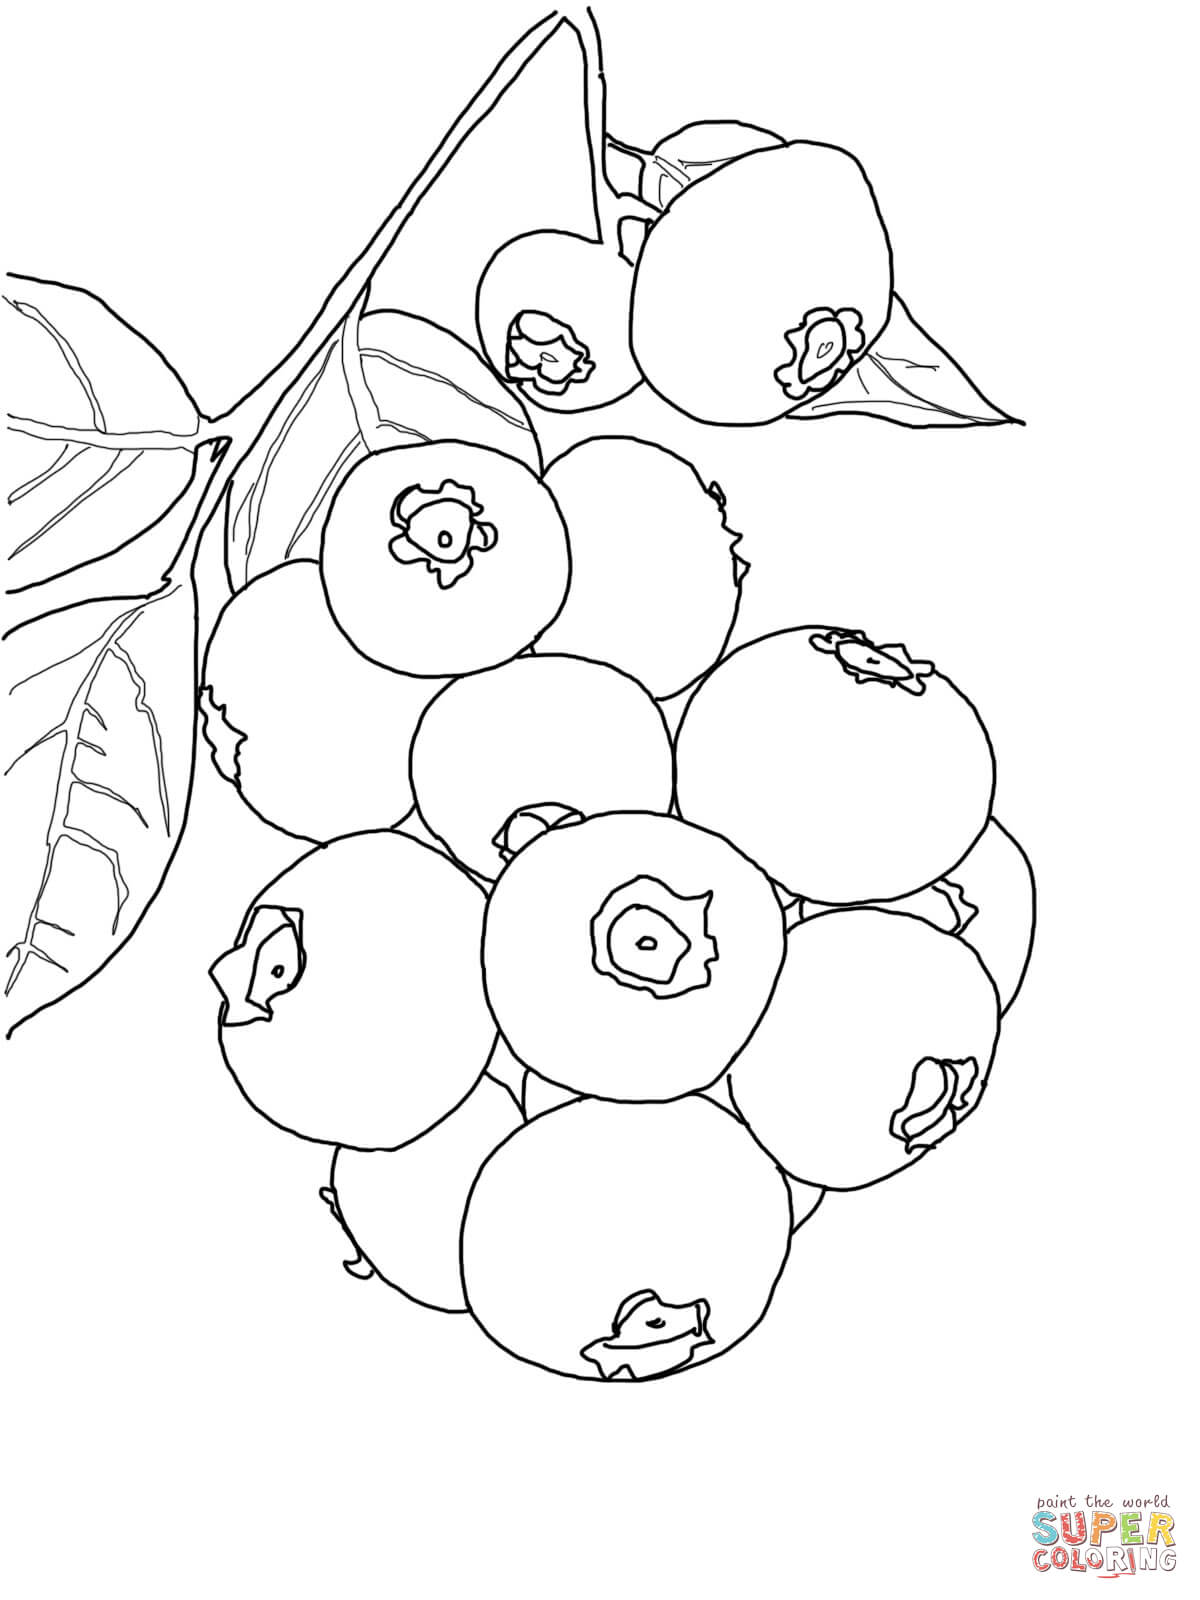 Blueberry Coloring Page